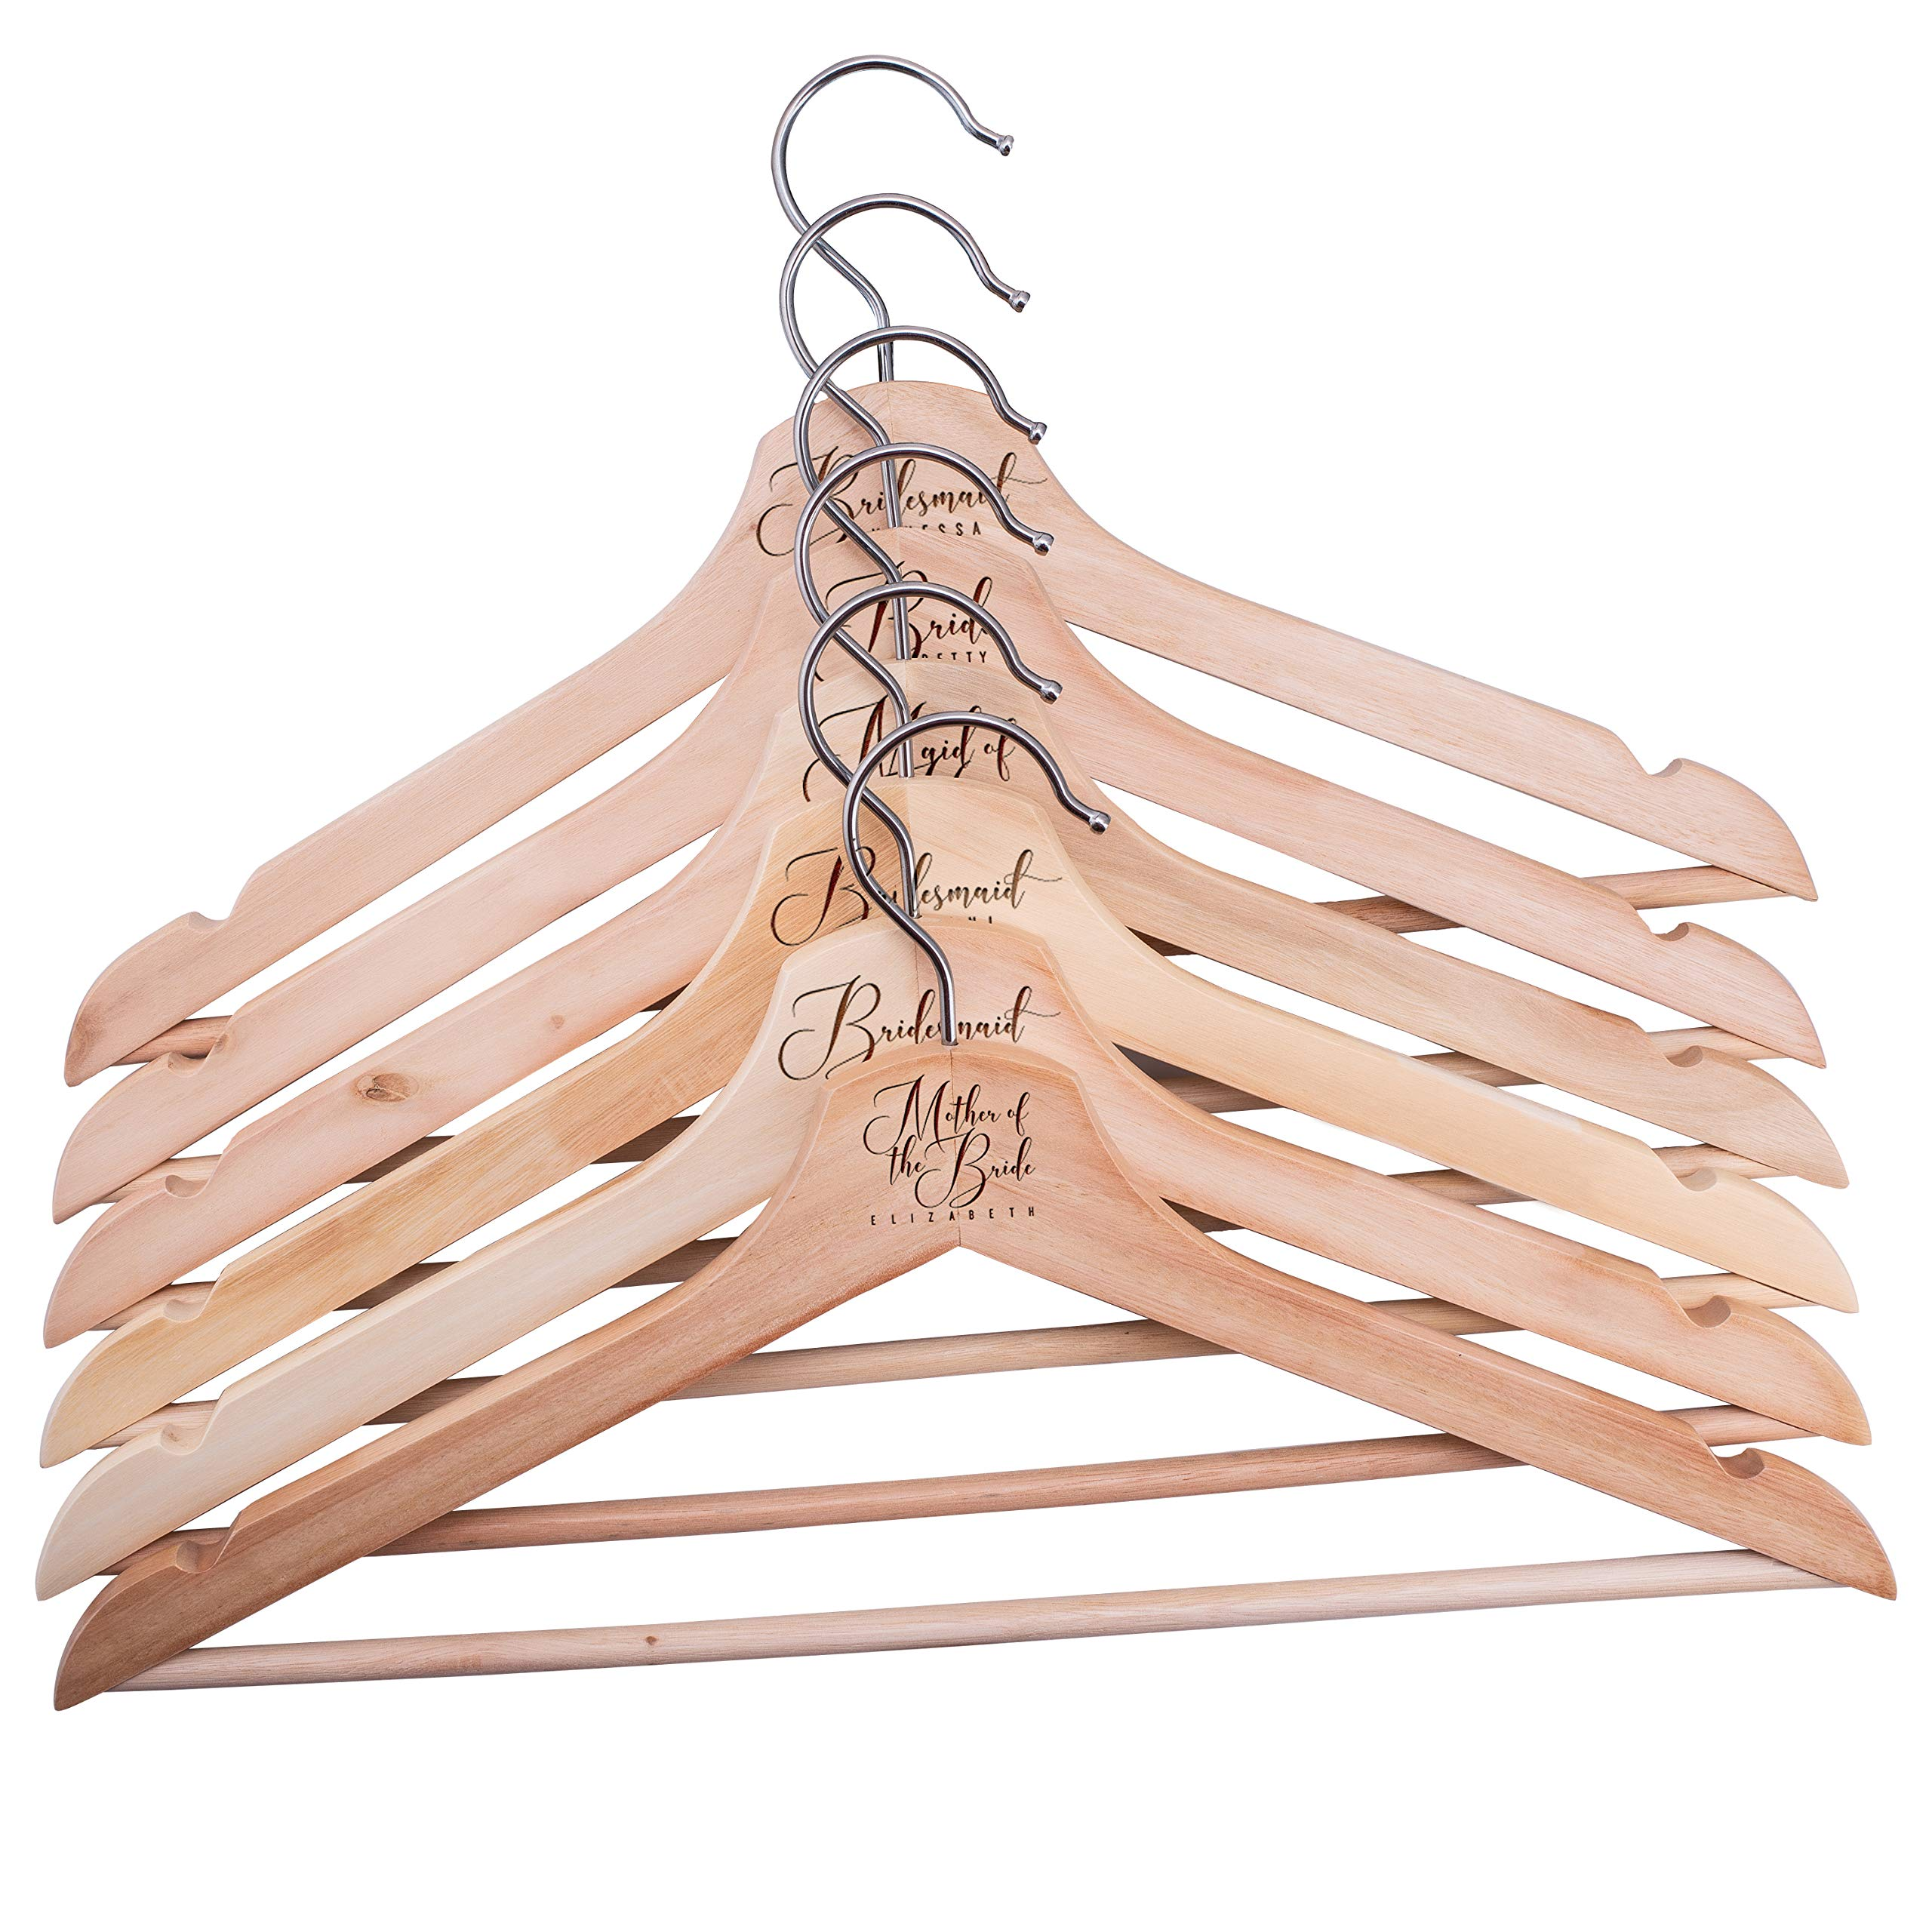 United Craft Supplies Personalized Clothe Hangers for Bridesmaid, Bride, Groomsmen and Grooms, Design 2, Set of 6 by United Craft Supplies